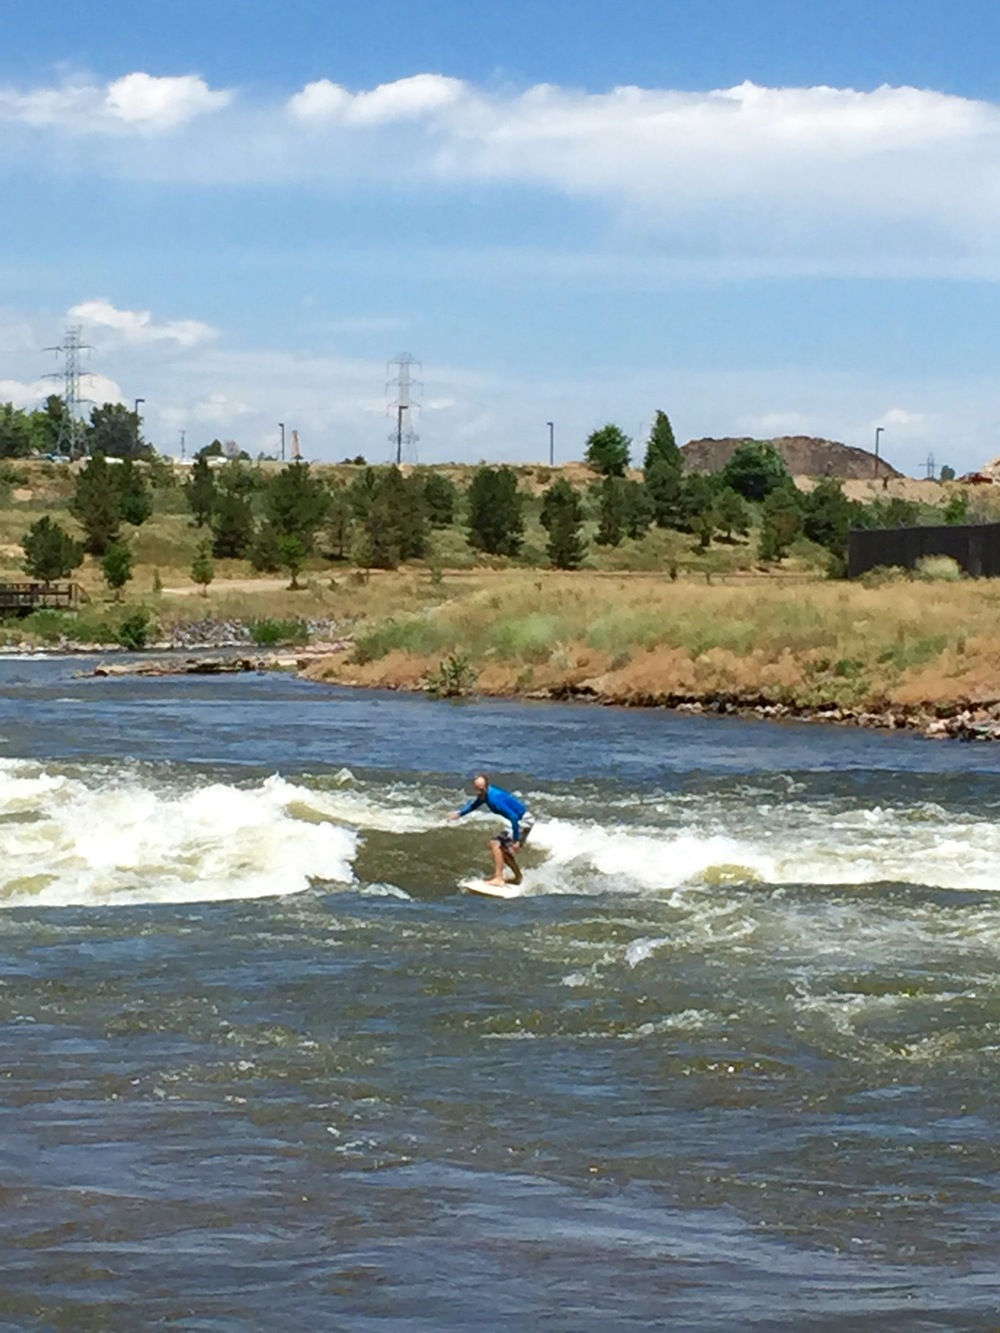 No-coast surfing at the Union Chutes; Denver has it all